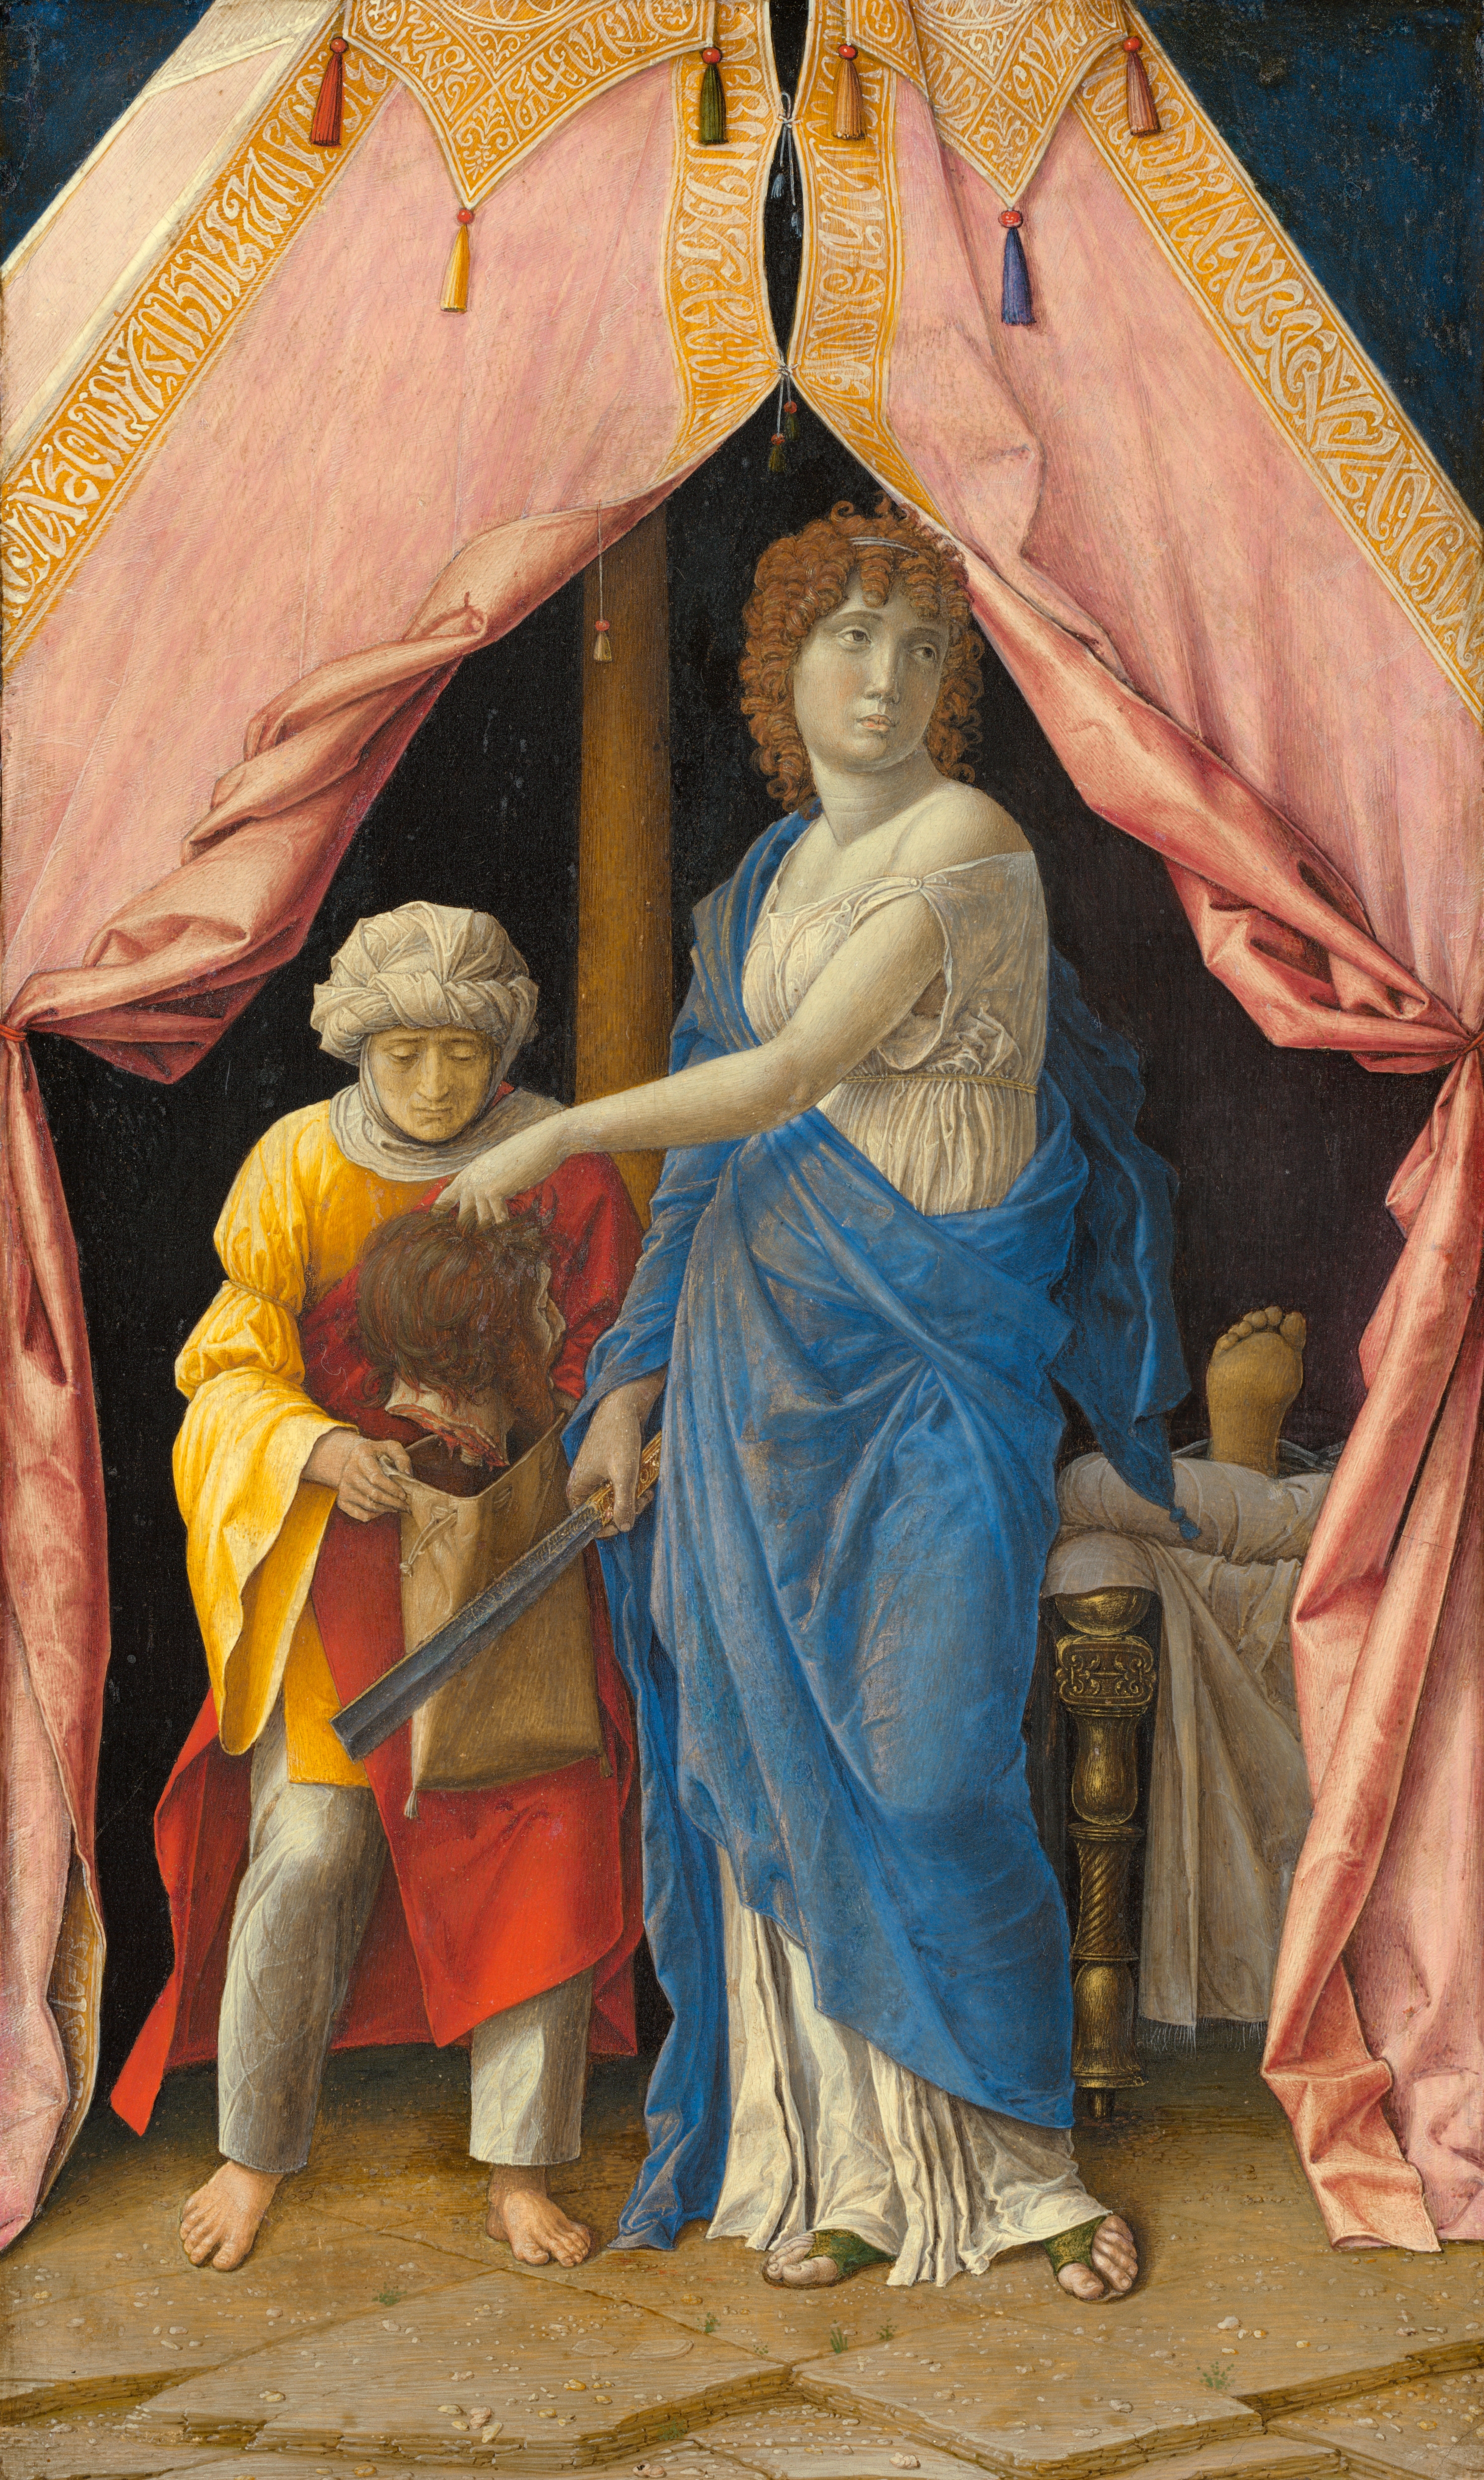 http://upload.wikimedia.org/wikipedia/commons/d/d5/Andrea_Mantegna_099.jpg